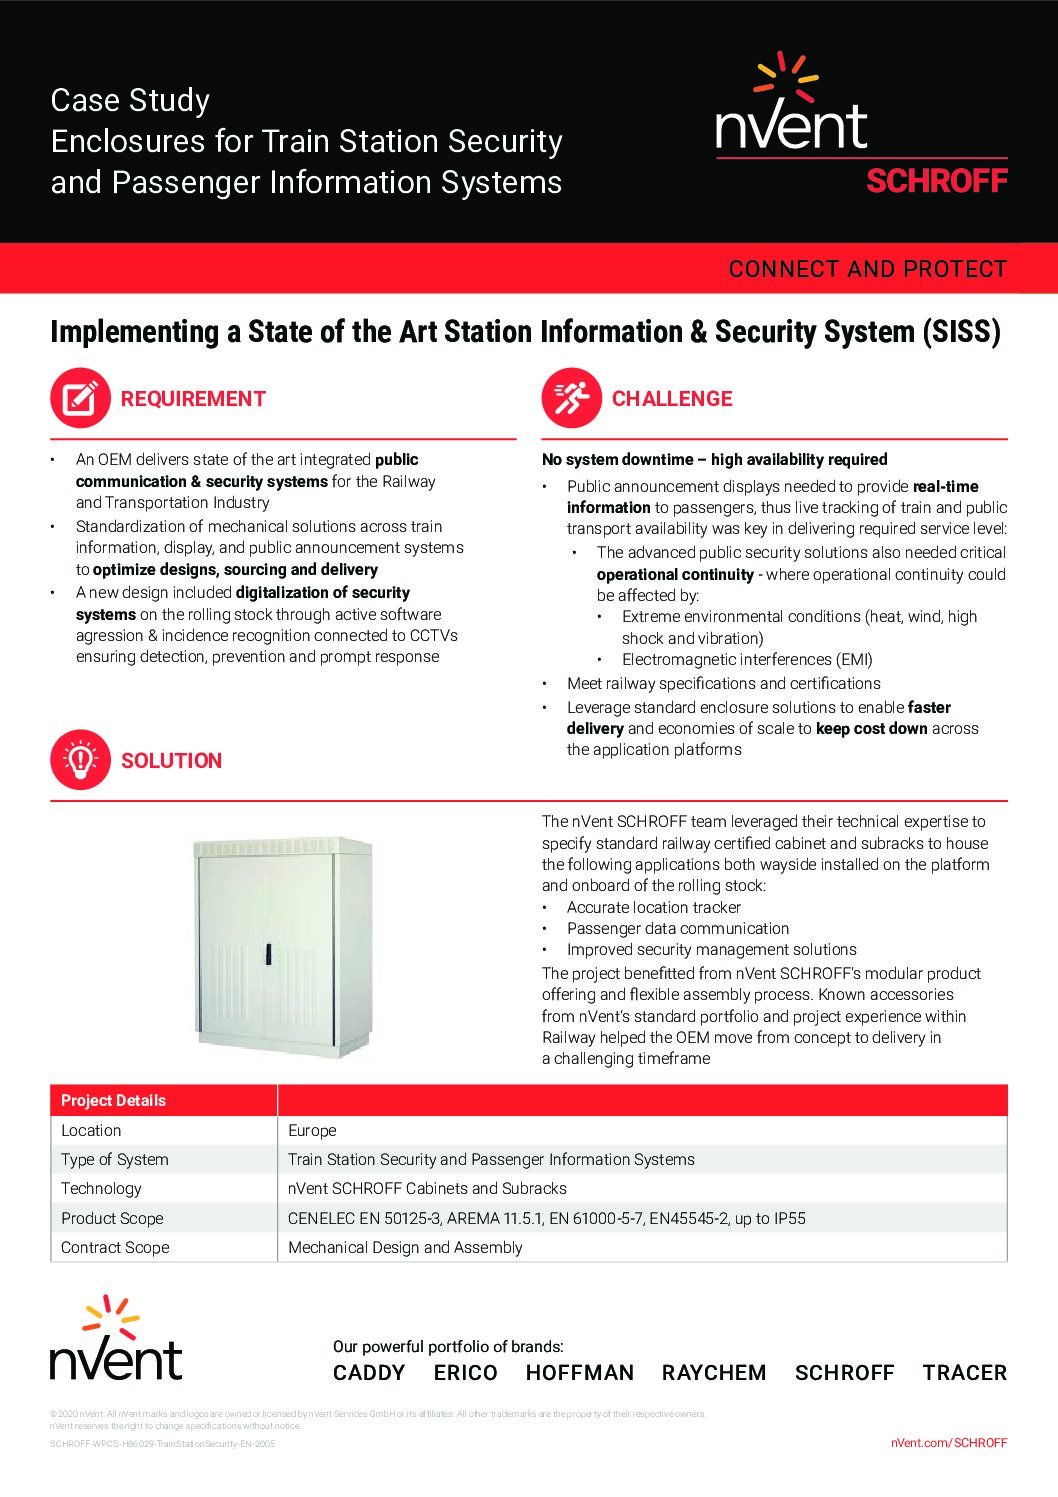 Enclosures for Train Station Security and Passenger Information Systems